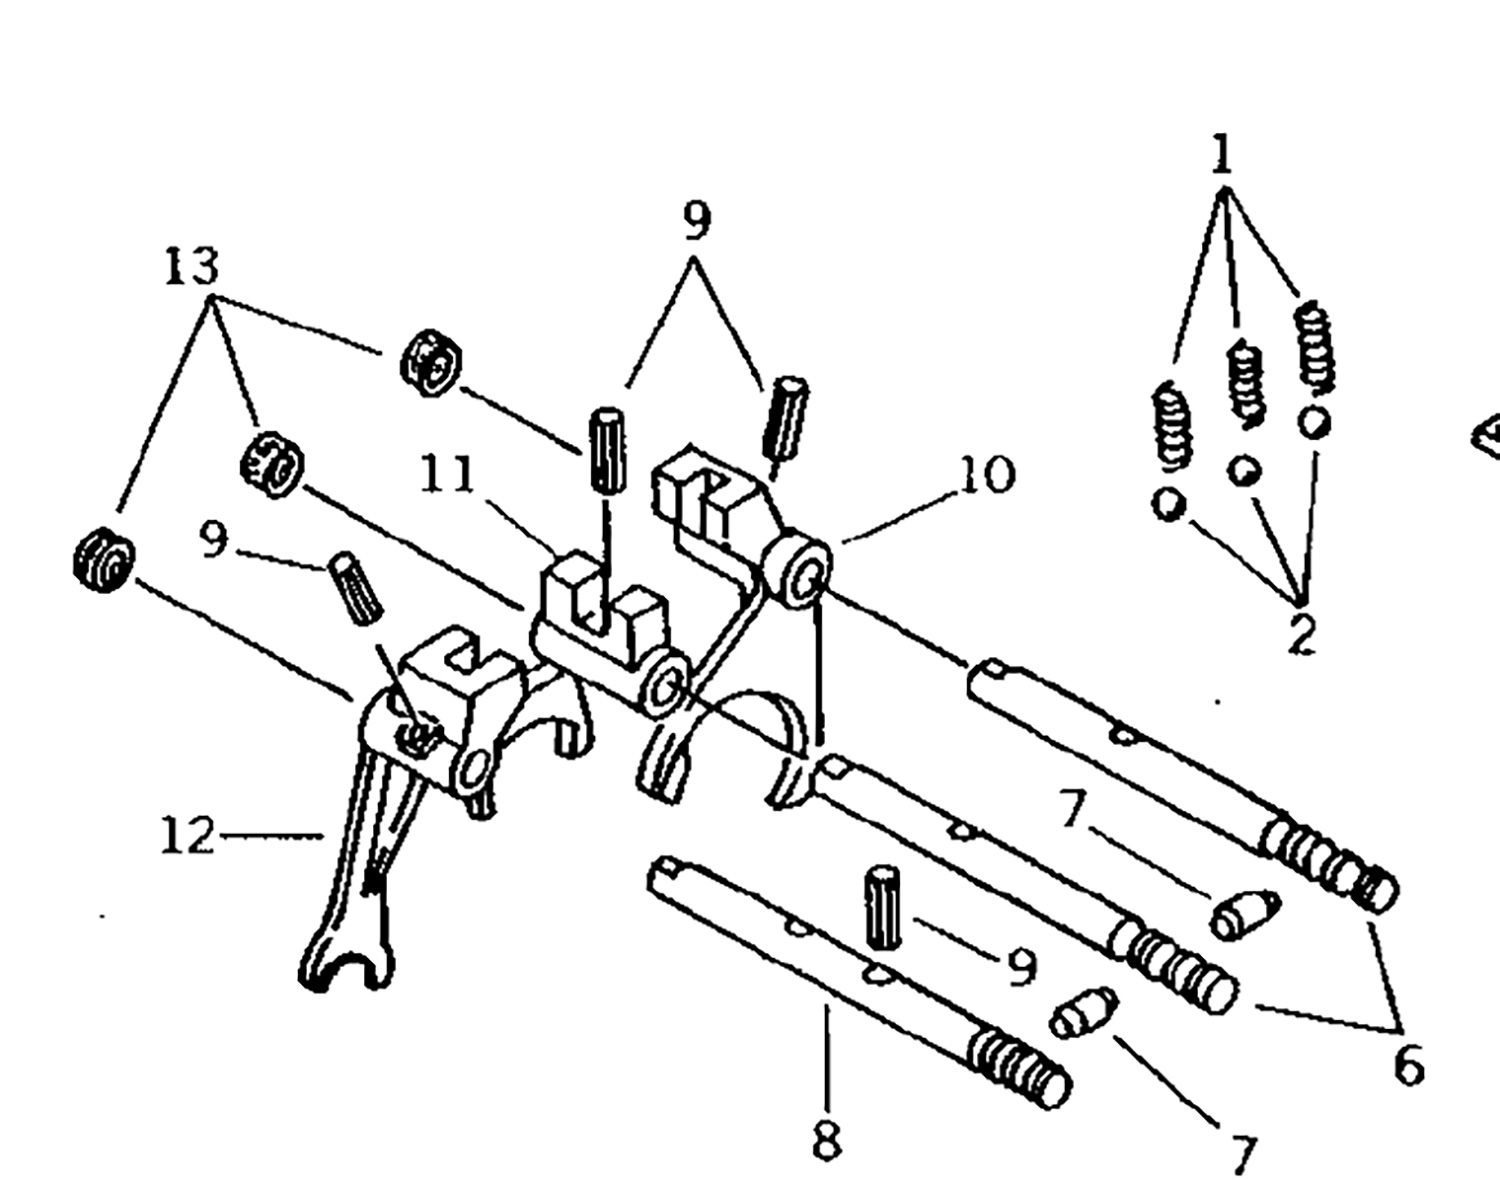 hight resolution of tractor parts for john deere compact tractors1st and 2nd shift fork